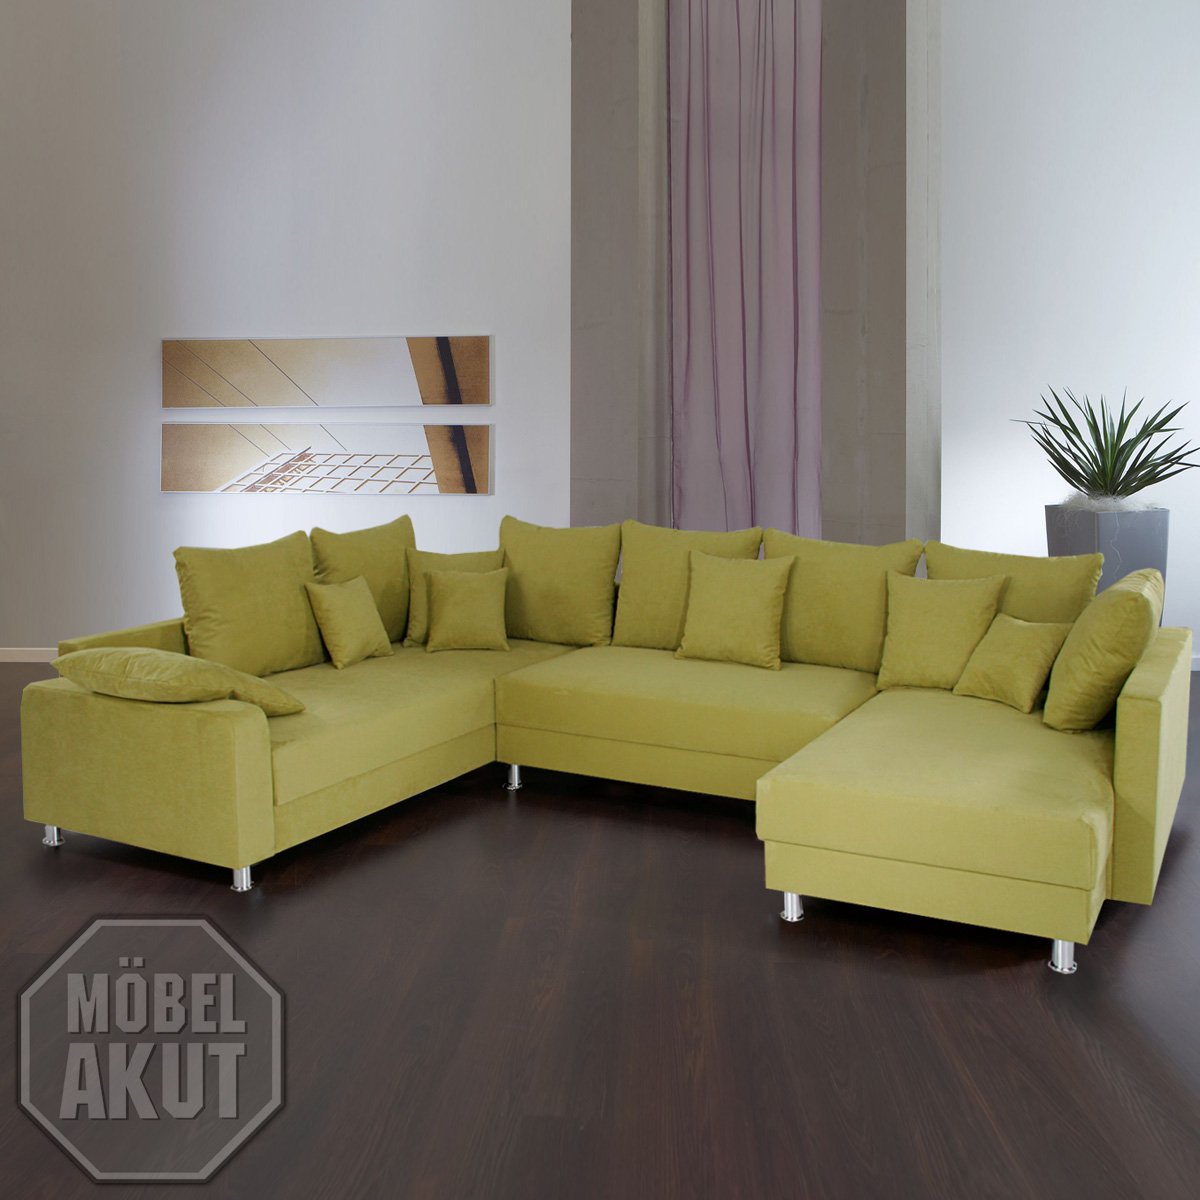 wohnlandschaft max sofa farbe gr n neu ovp ebay. Black Bedroom Furniture Sets. Home Design Ideas